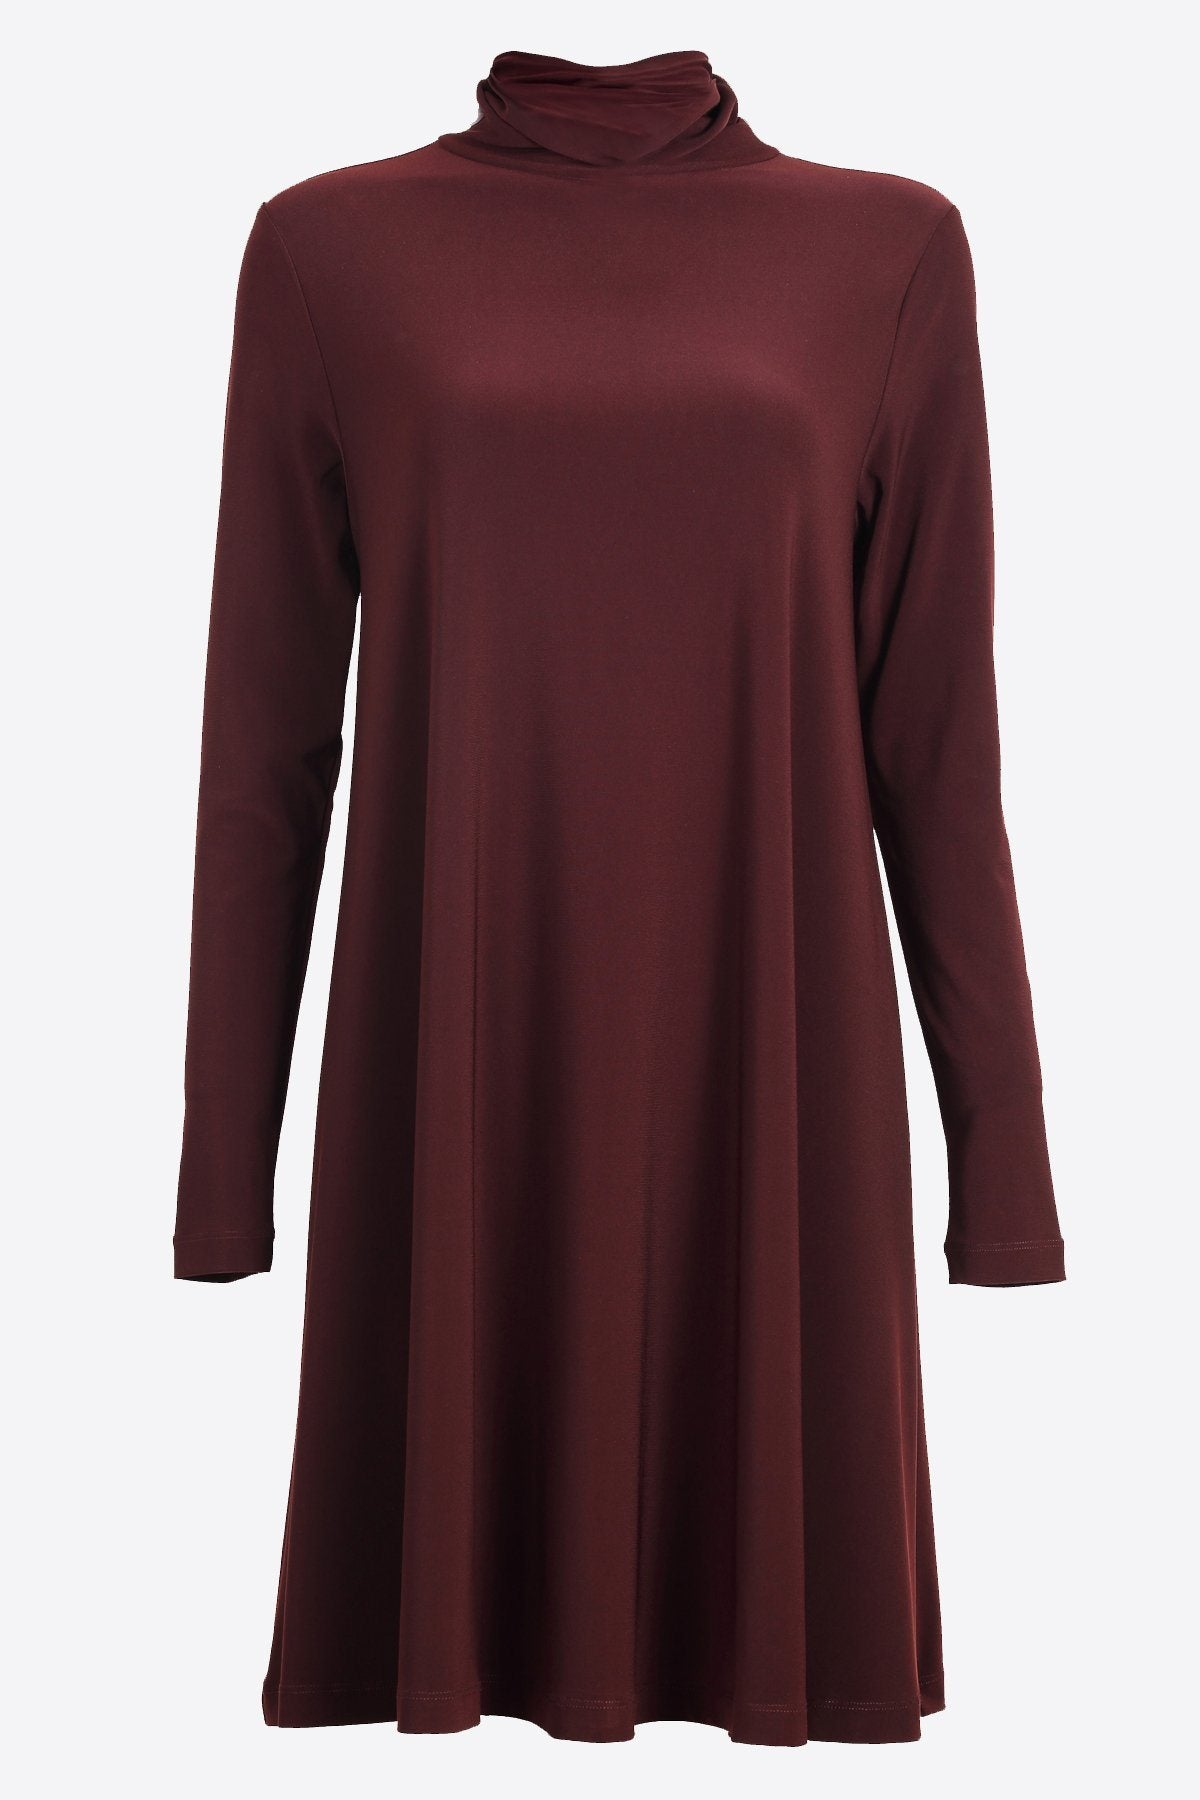 Long Sleeve High Neck Swing Top chestnut